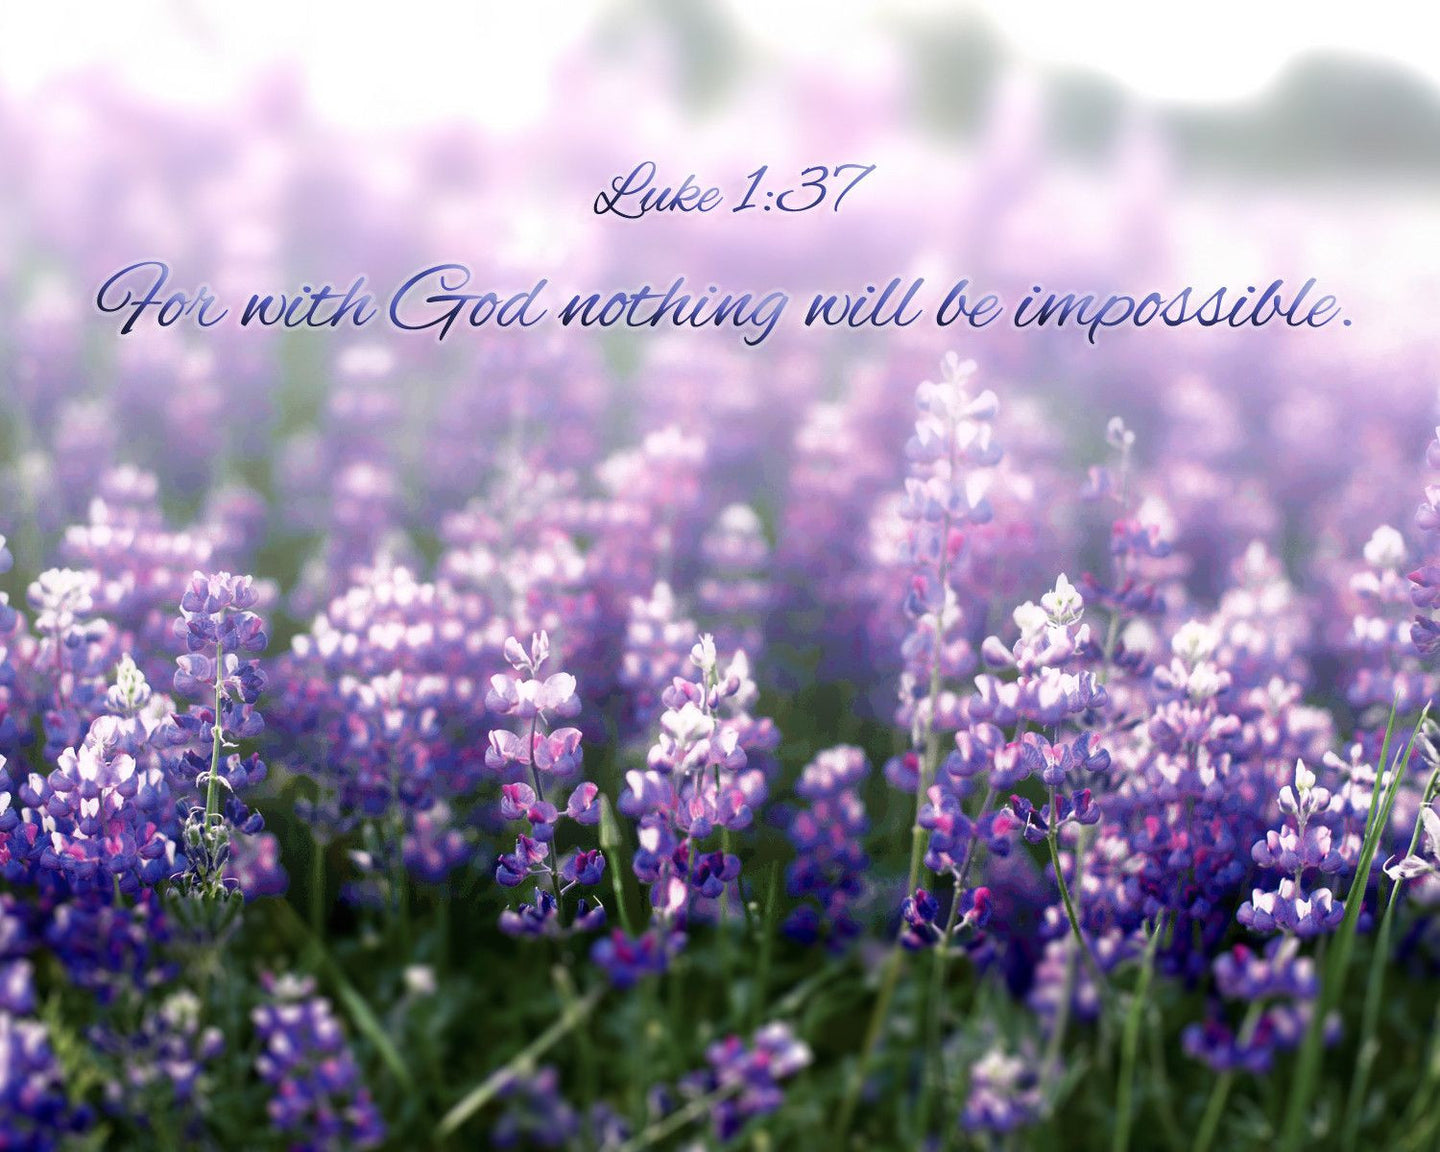 Purple Lupin Flowers Photograph with Bright Spring Colors and Inspirational Scripture | Luke 1:37-Photograph-Patti Mustain